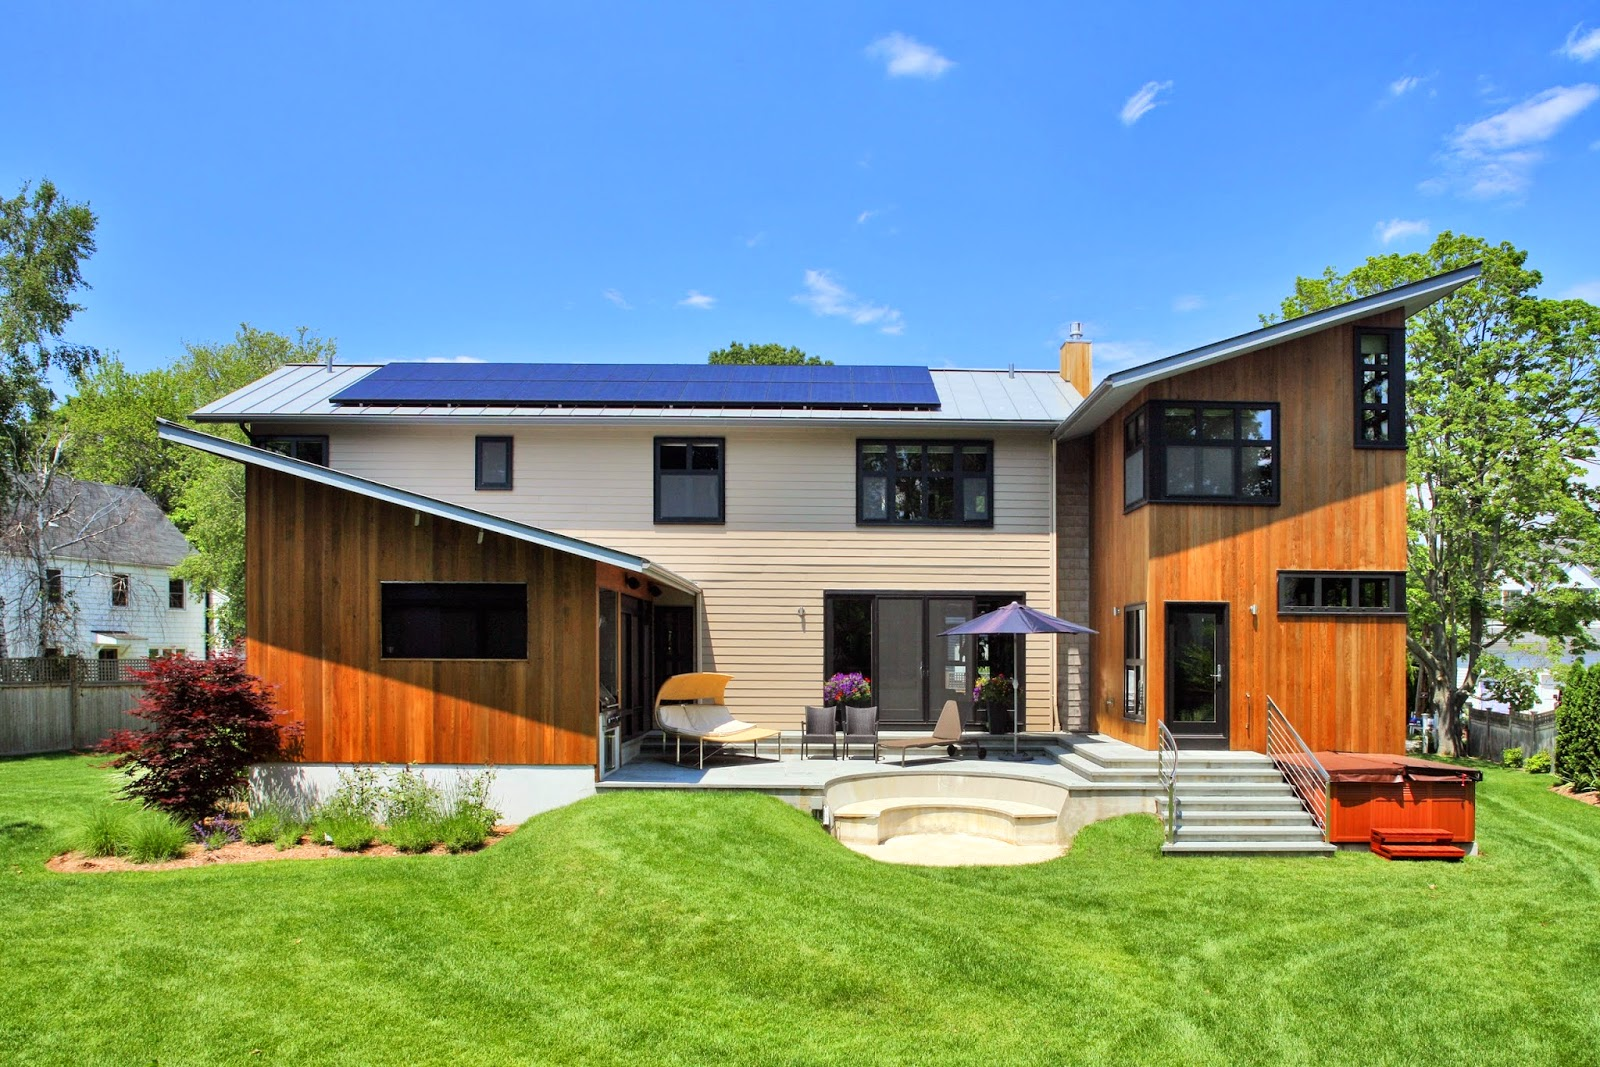 Google Invests $100 Million to Make Solar Panels More Affordable for American Homeowners